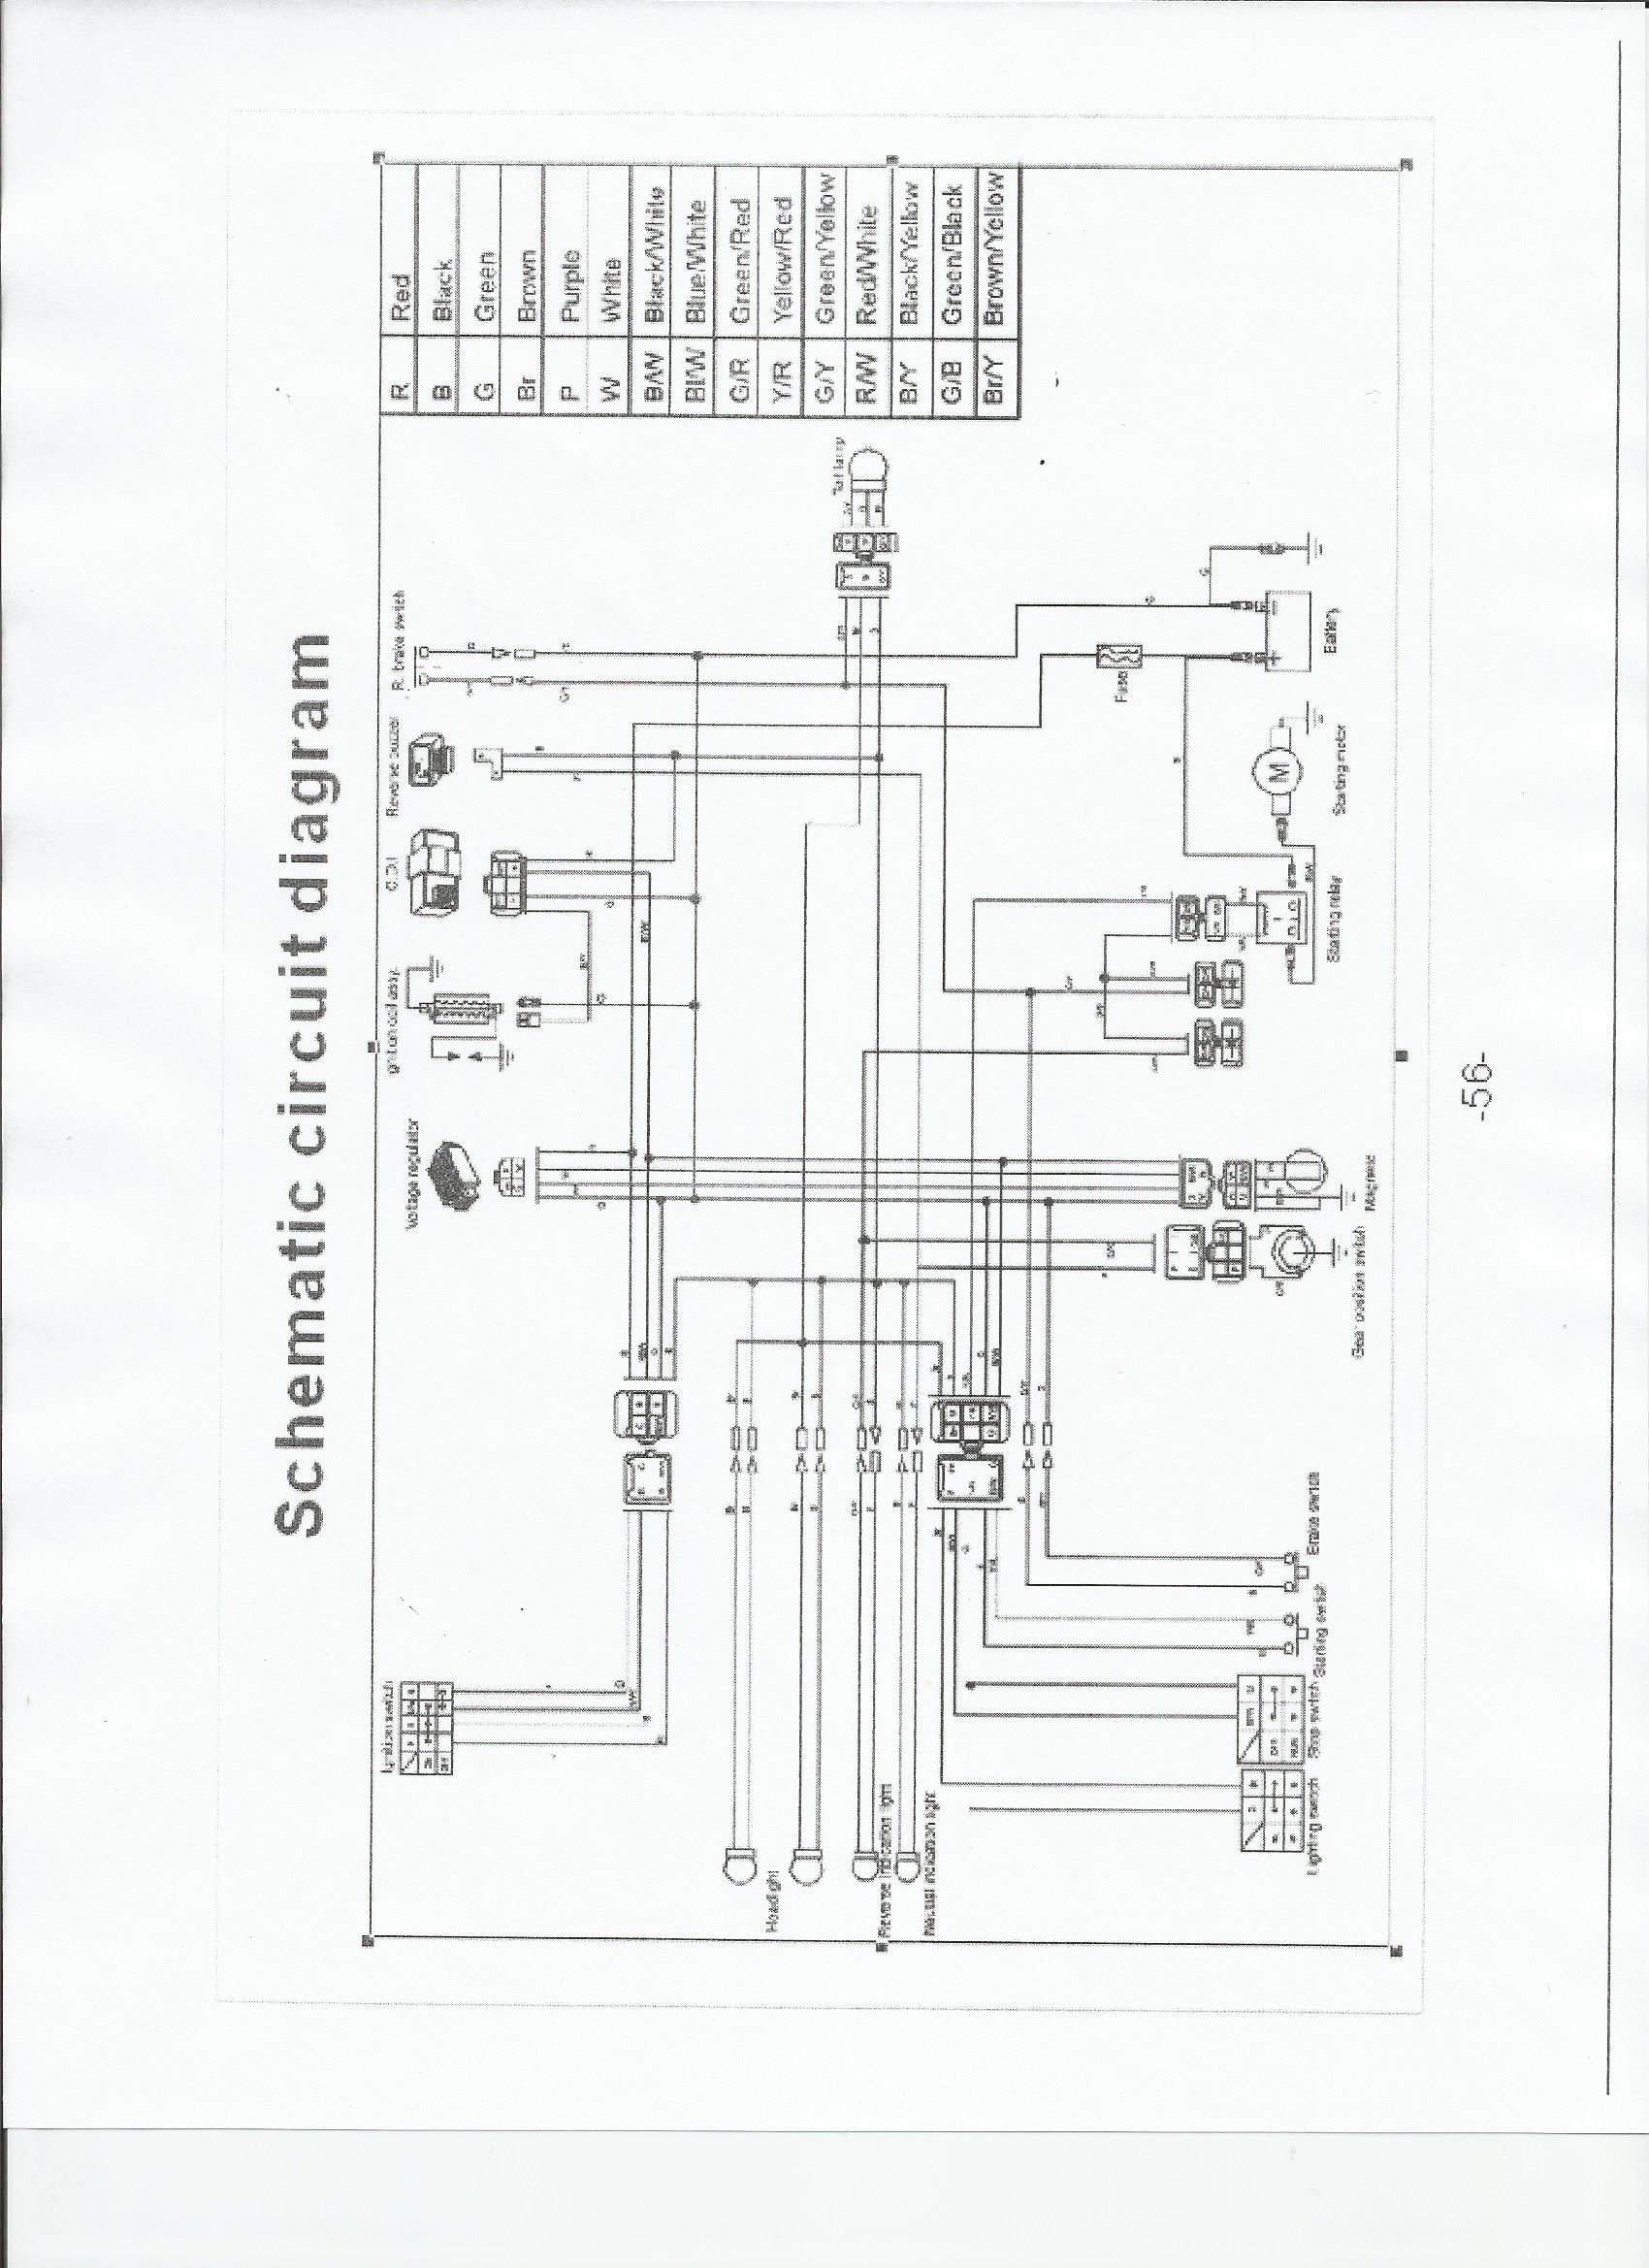 tao tao wiring schematic taotao ata110 b wiring diagram taotao 110cc wiring diagram 110cc atv wiring harness at mifinder.co